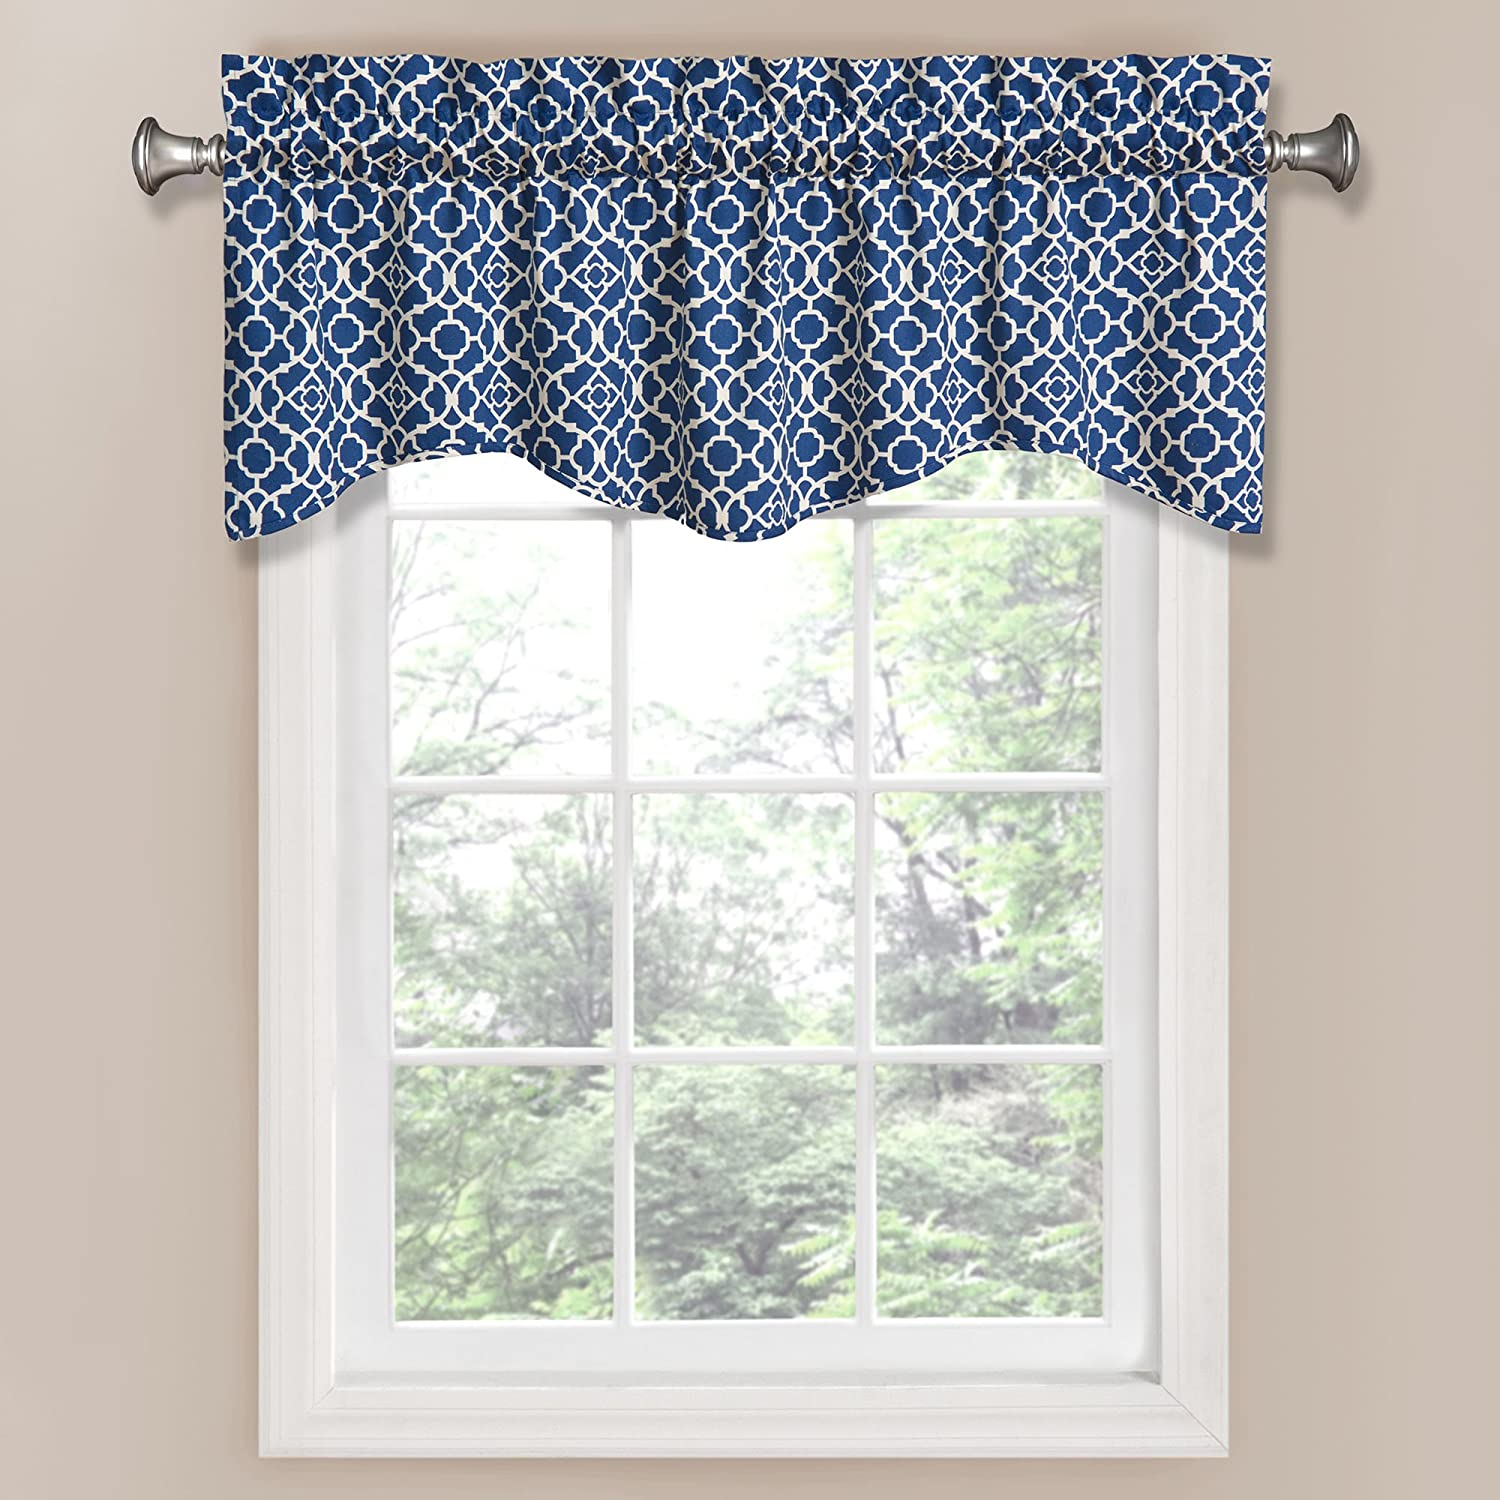 fascinating Waverly Lovely Lattice Curtain Part - 6: Amazon.com: Waverly 12459050X016IND Lovely Lattice 50-Inch by 16-Inch  Window Valance, Indigo: Home u0026 Kitchen